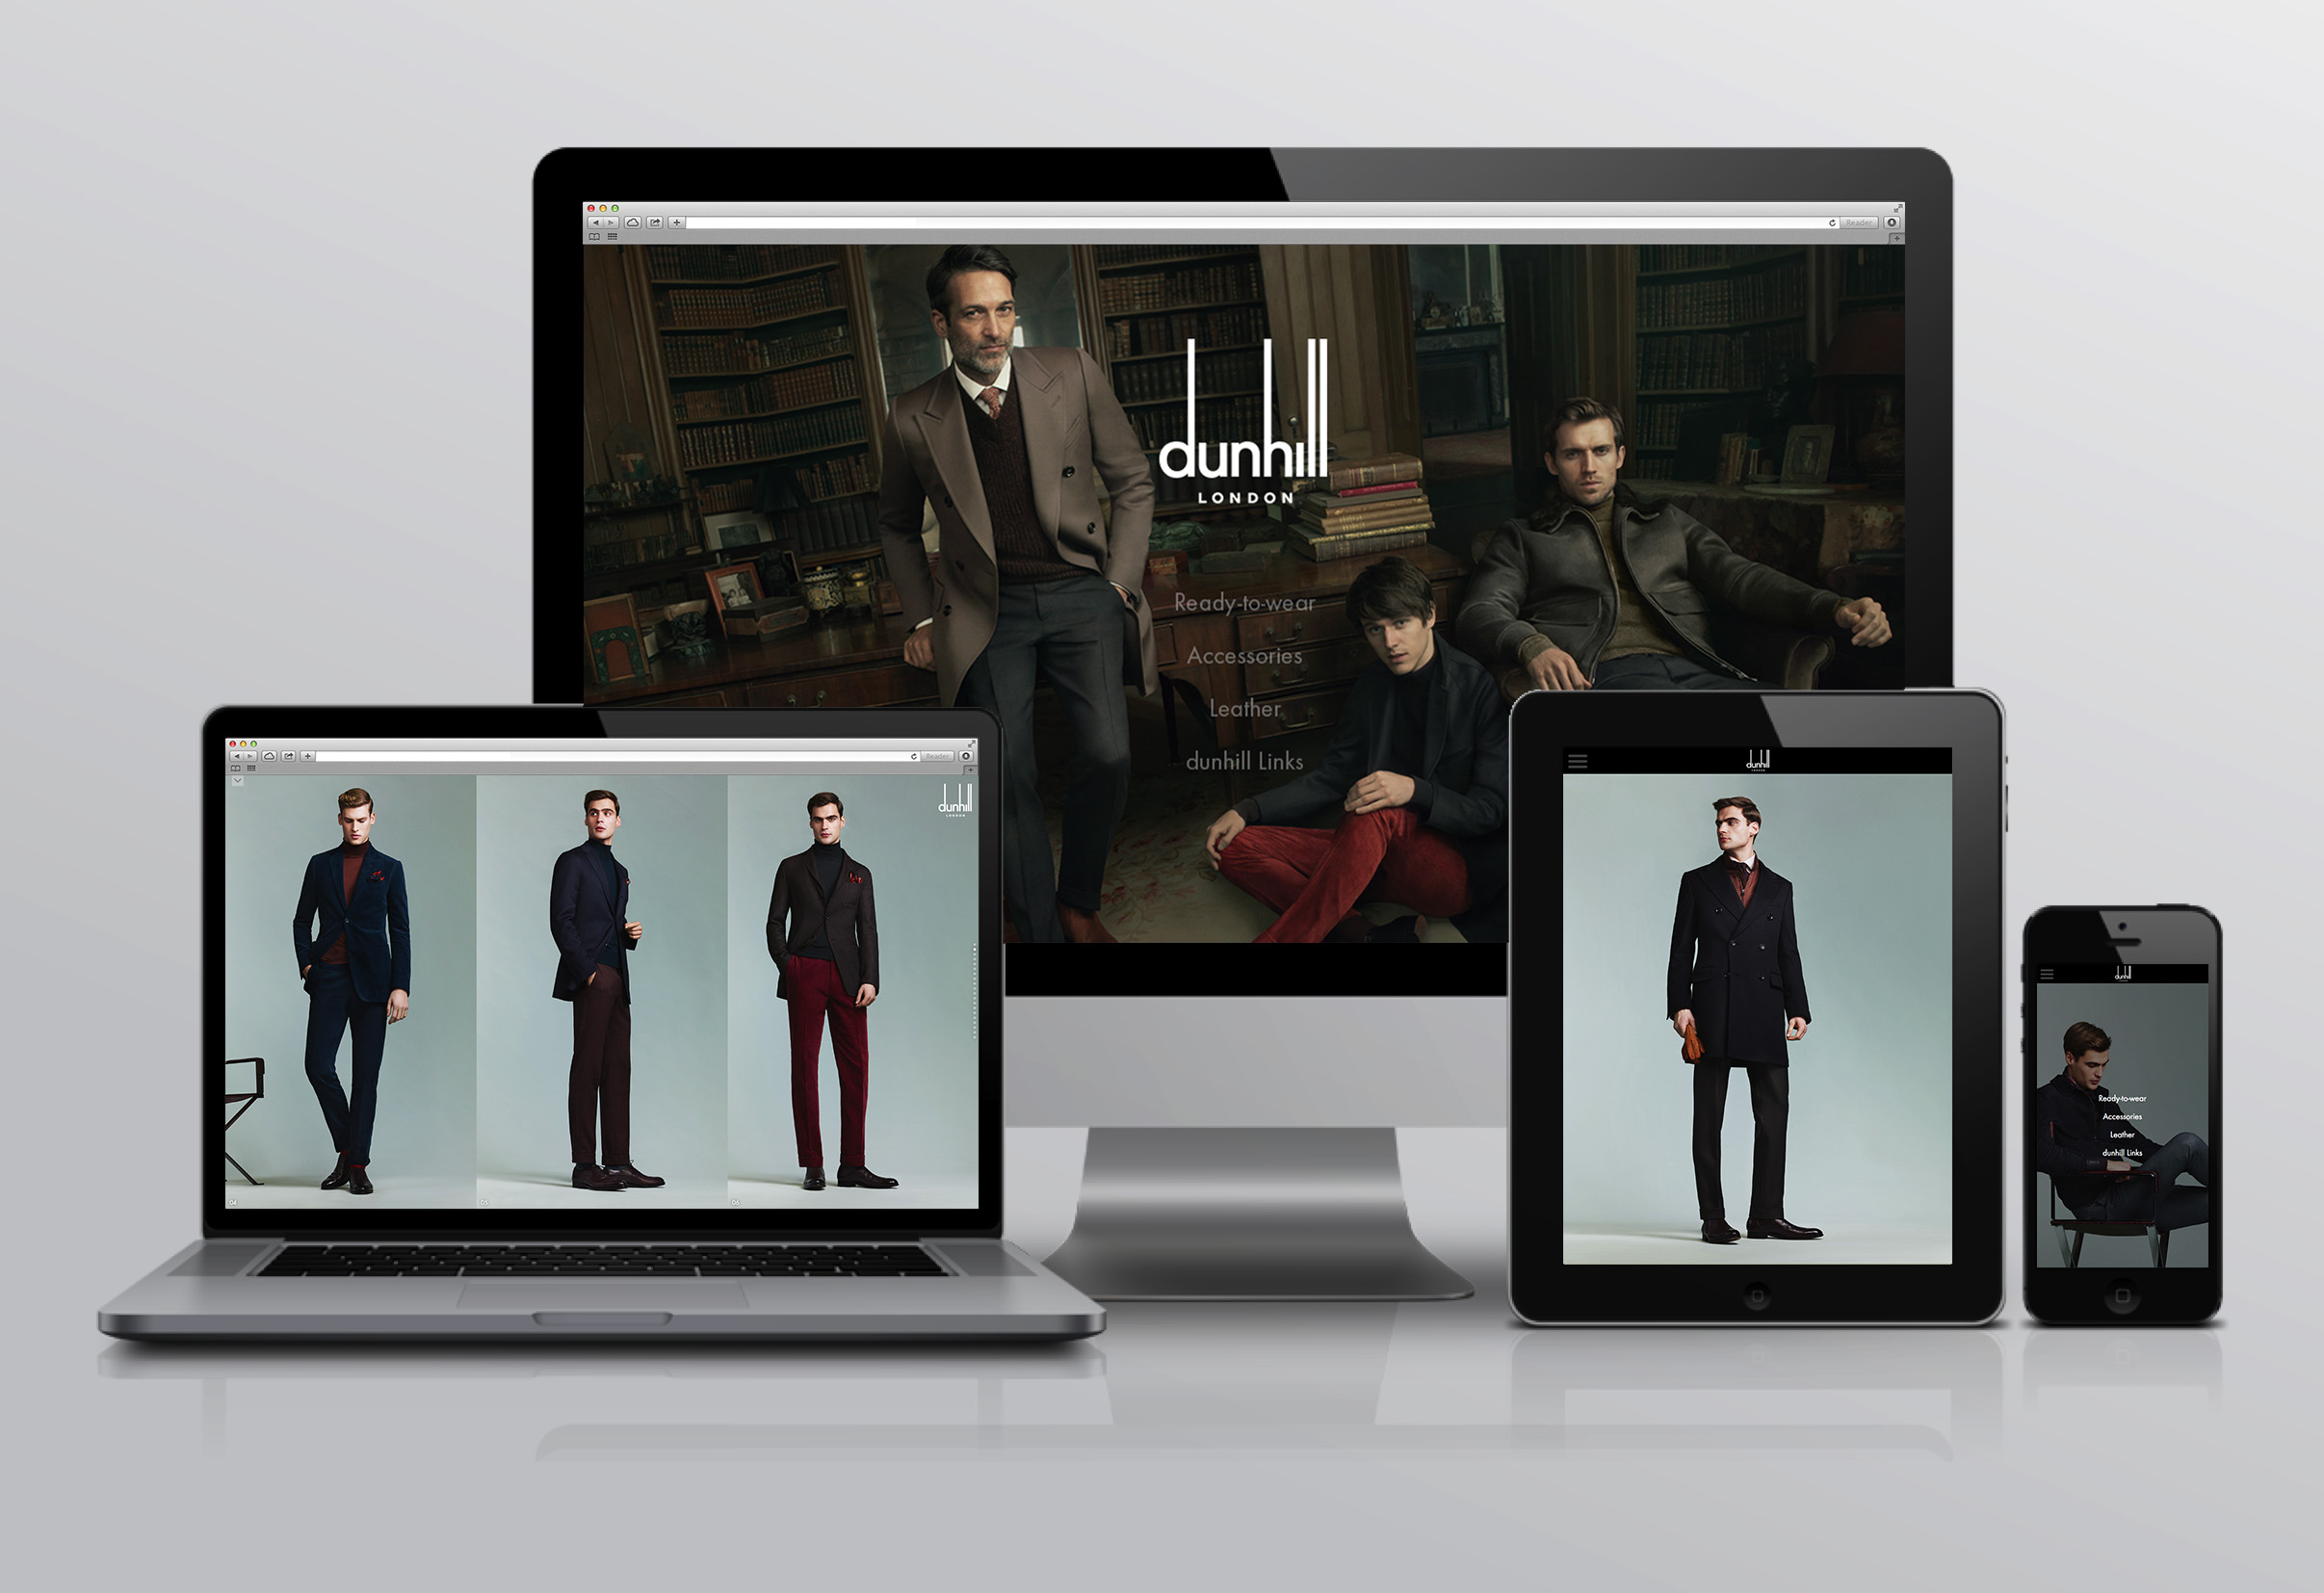 TinyBeastDesign-Dunhill-WebsiteLookbook